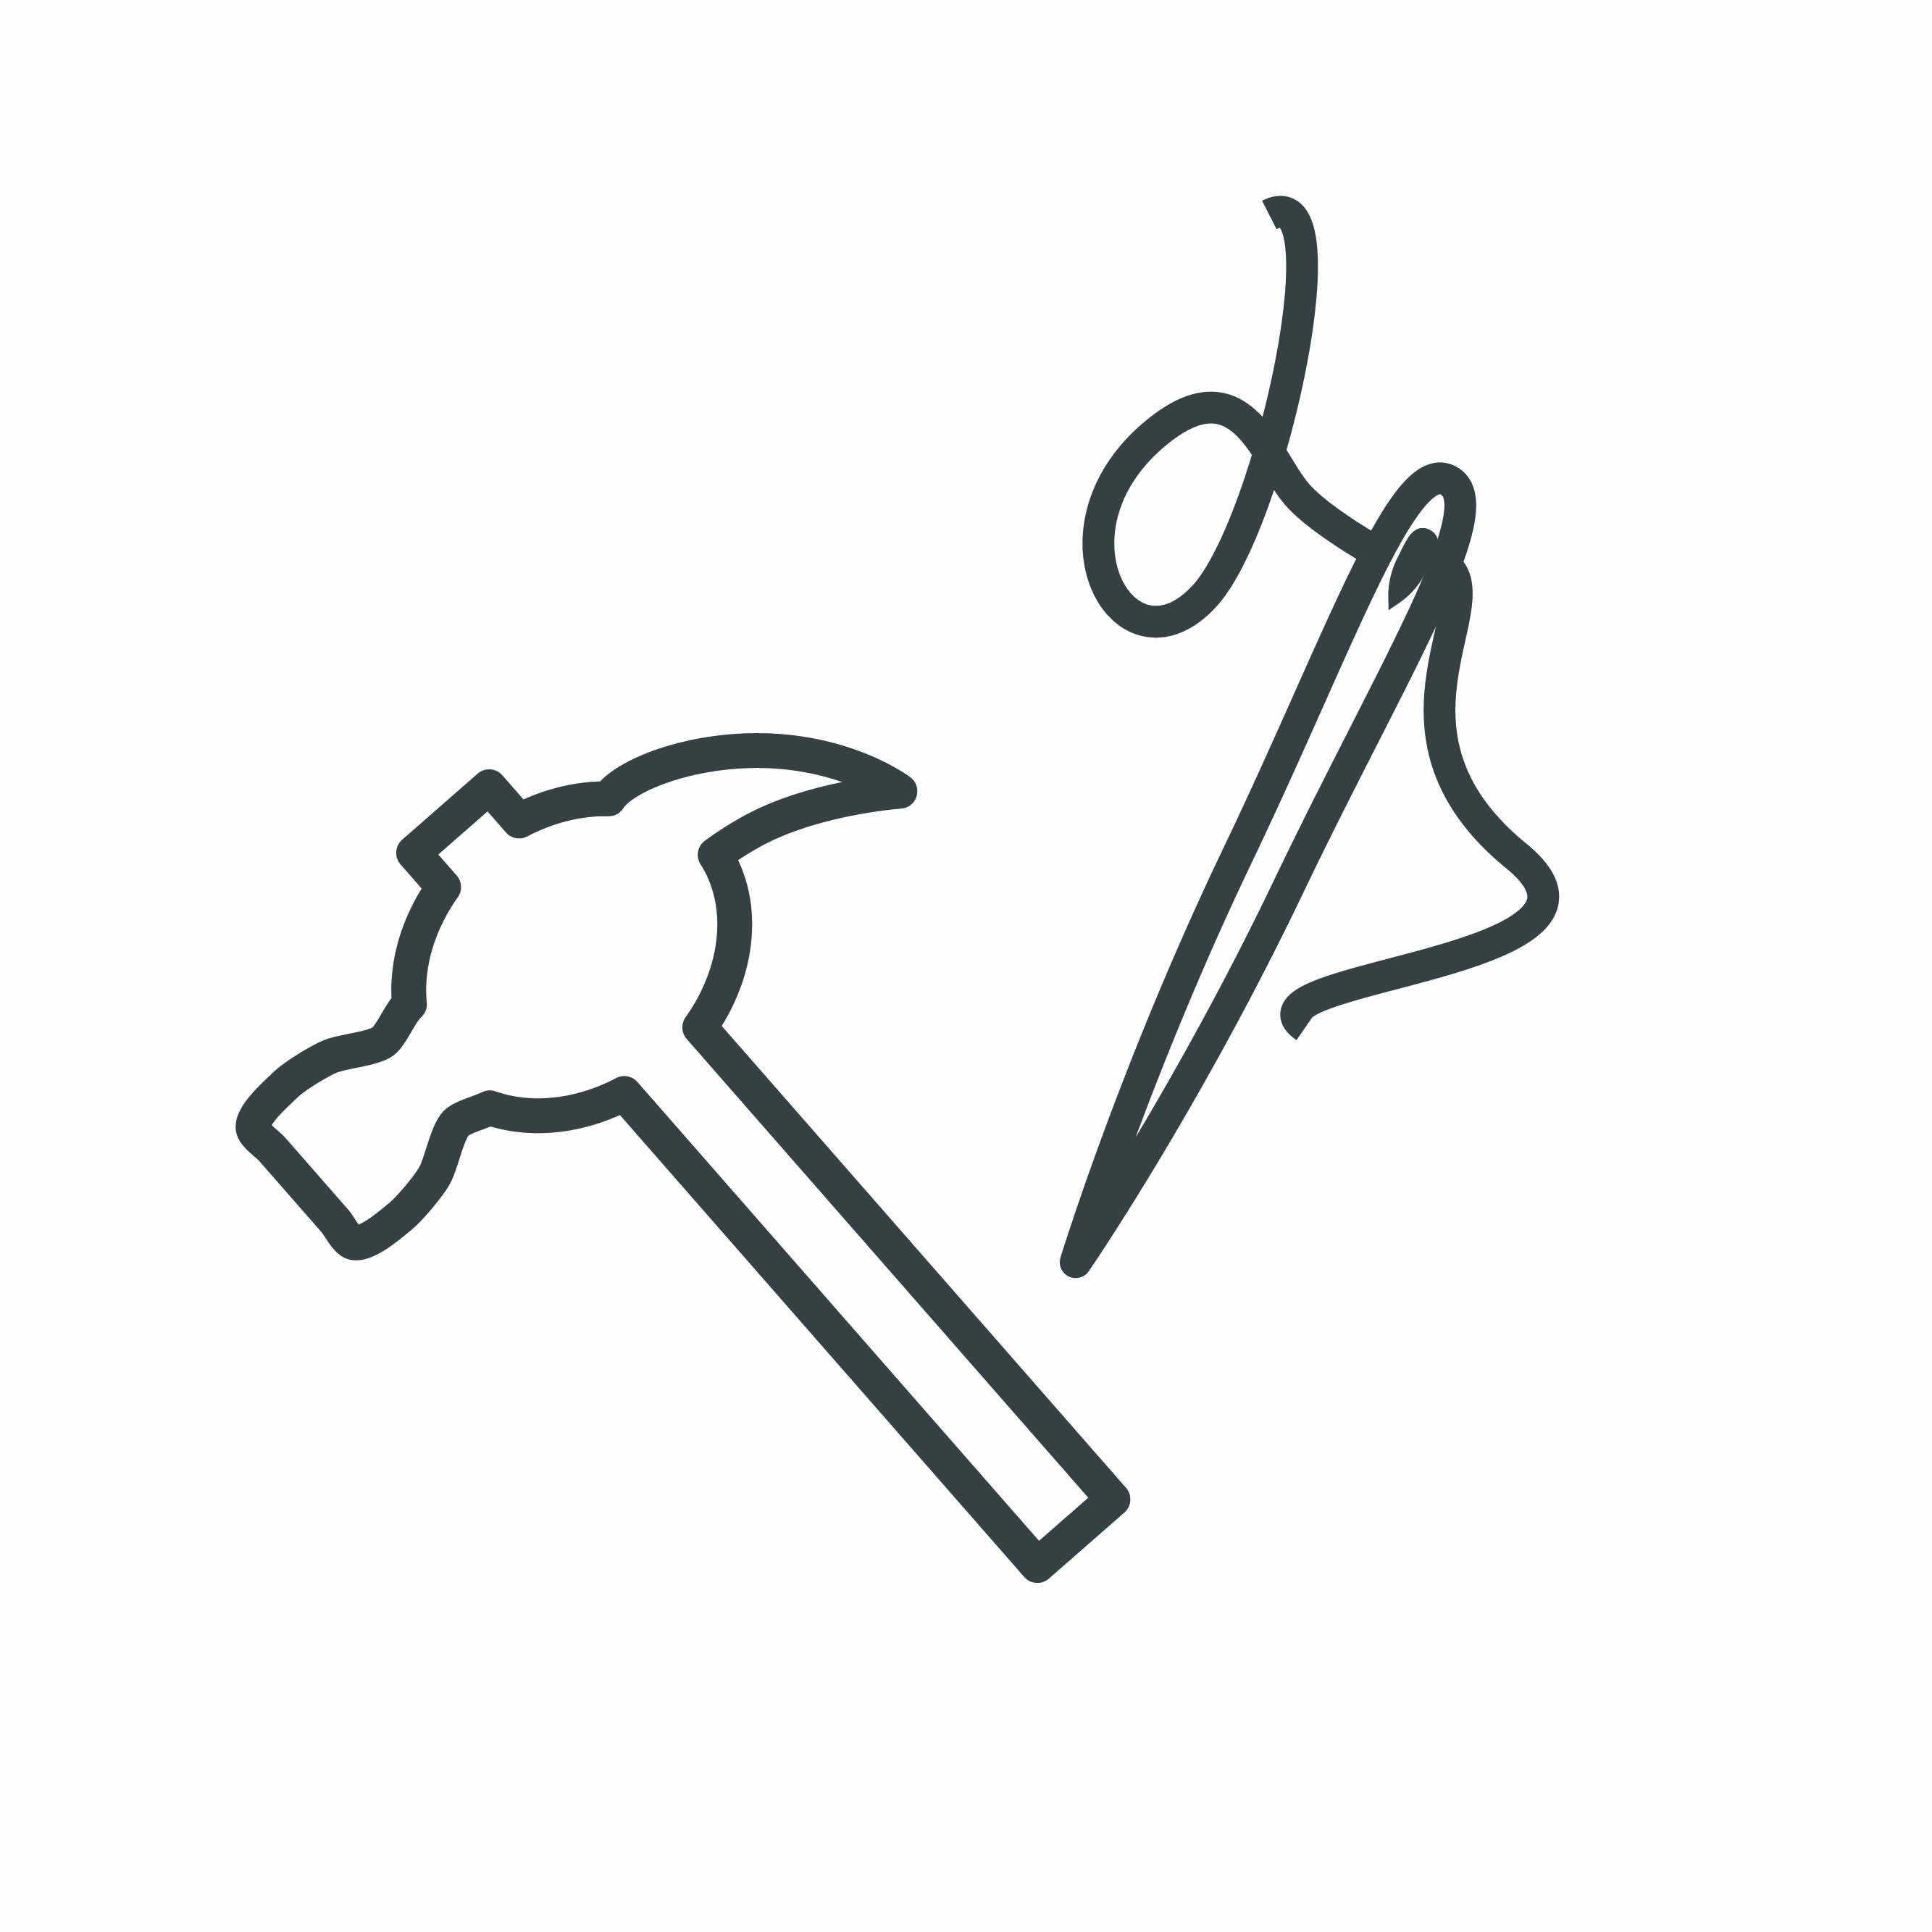 Hammer and needle icon. Graphic